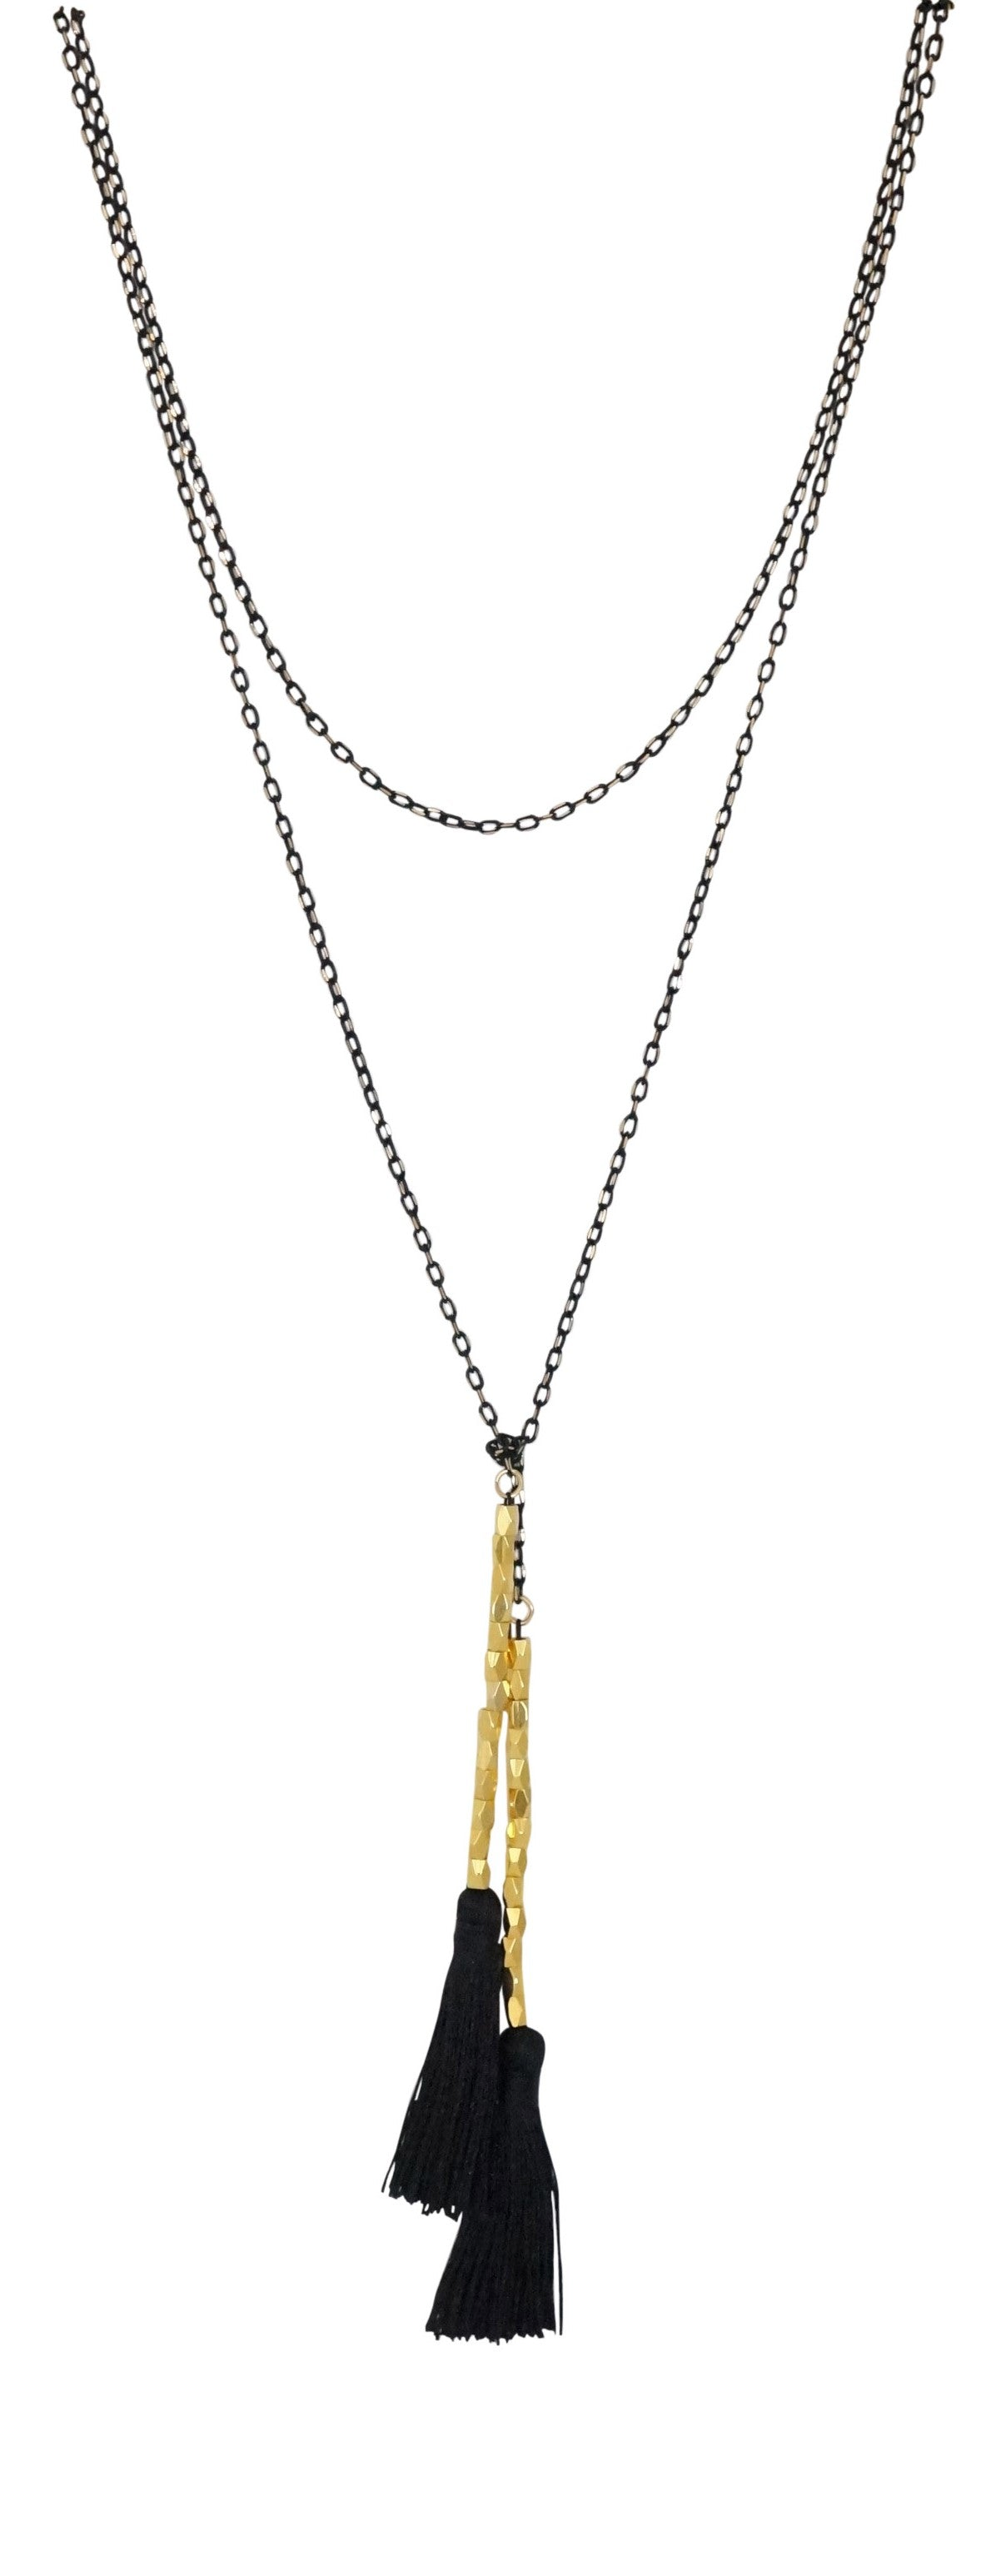 Bold Necklace - Carolyn Hearn Designs